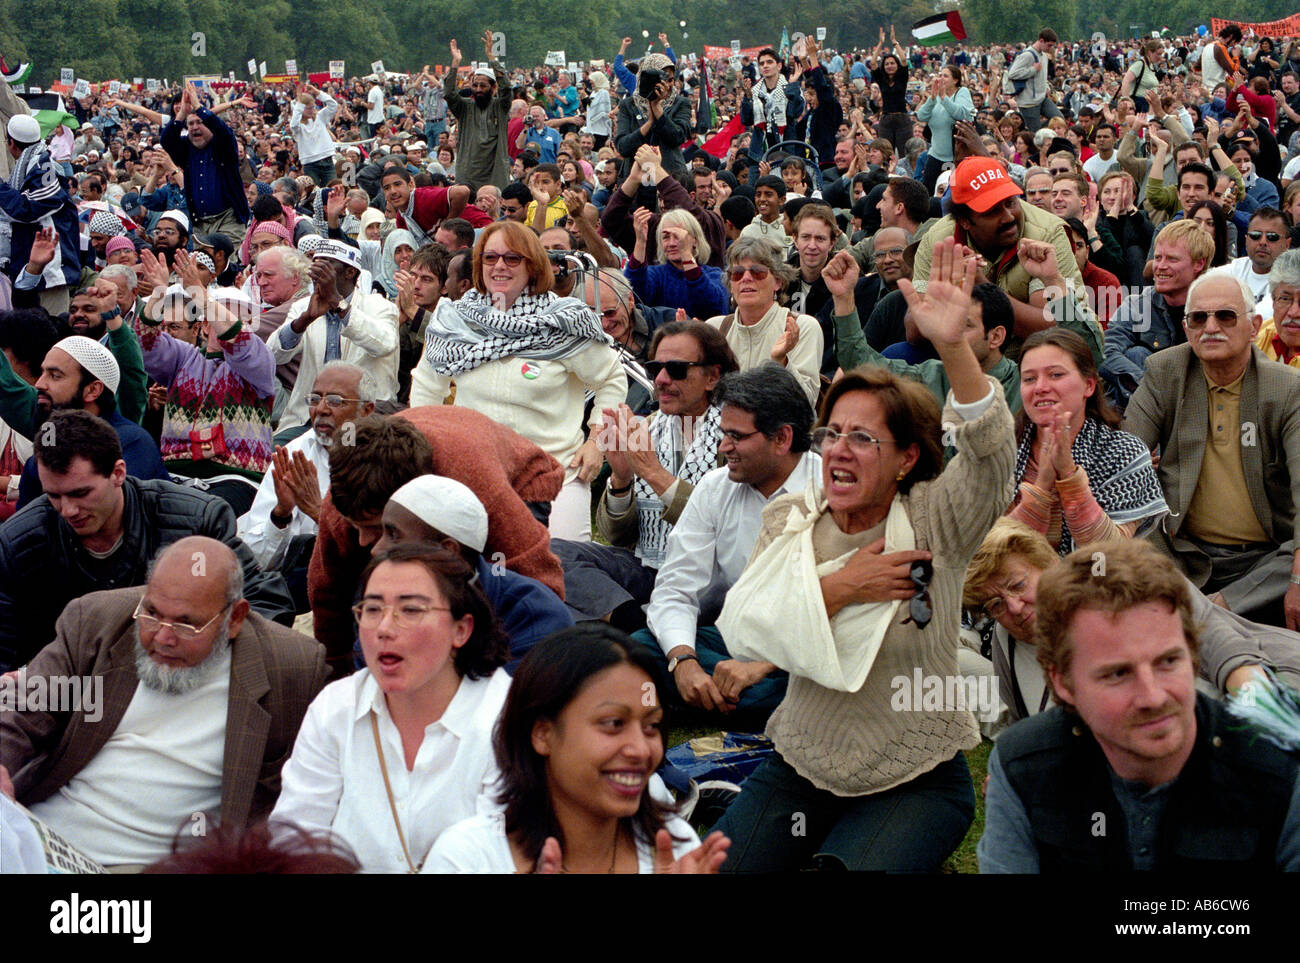 Large multicultural crowd of people in Hyde Park for a rally. - Stock Image